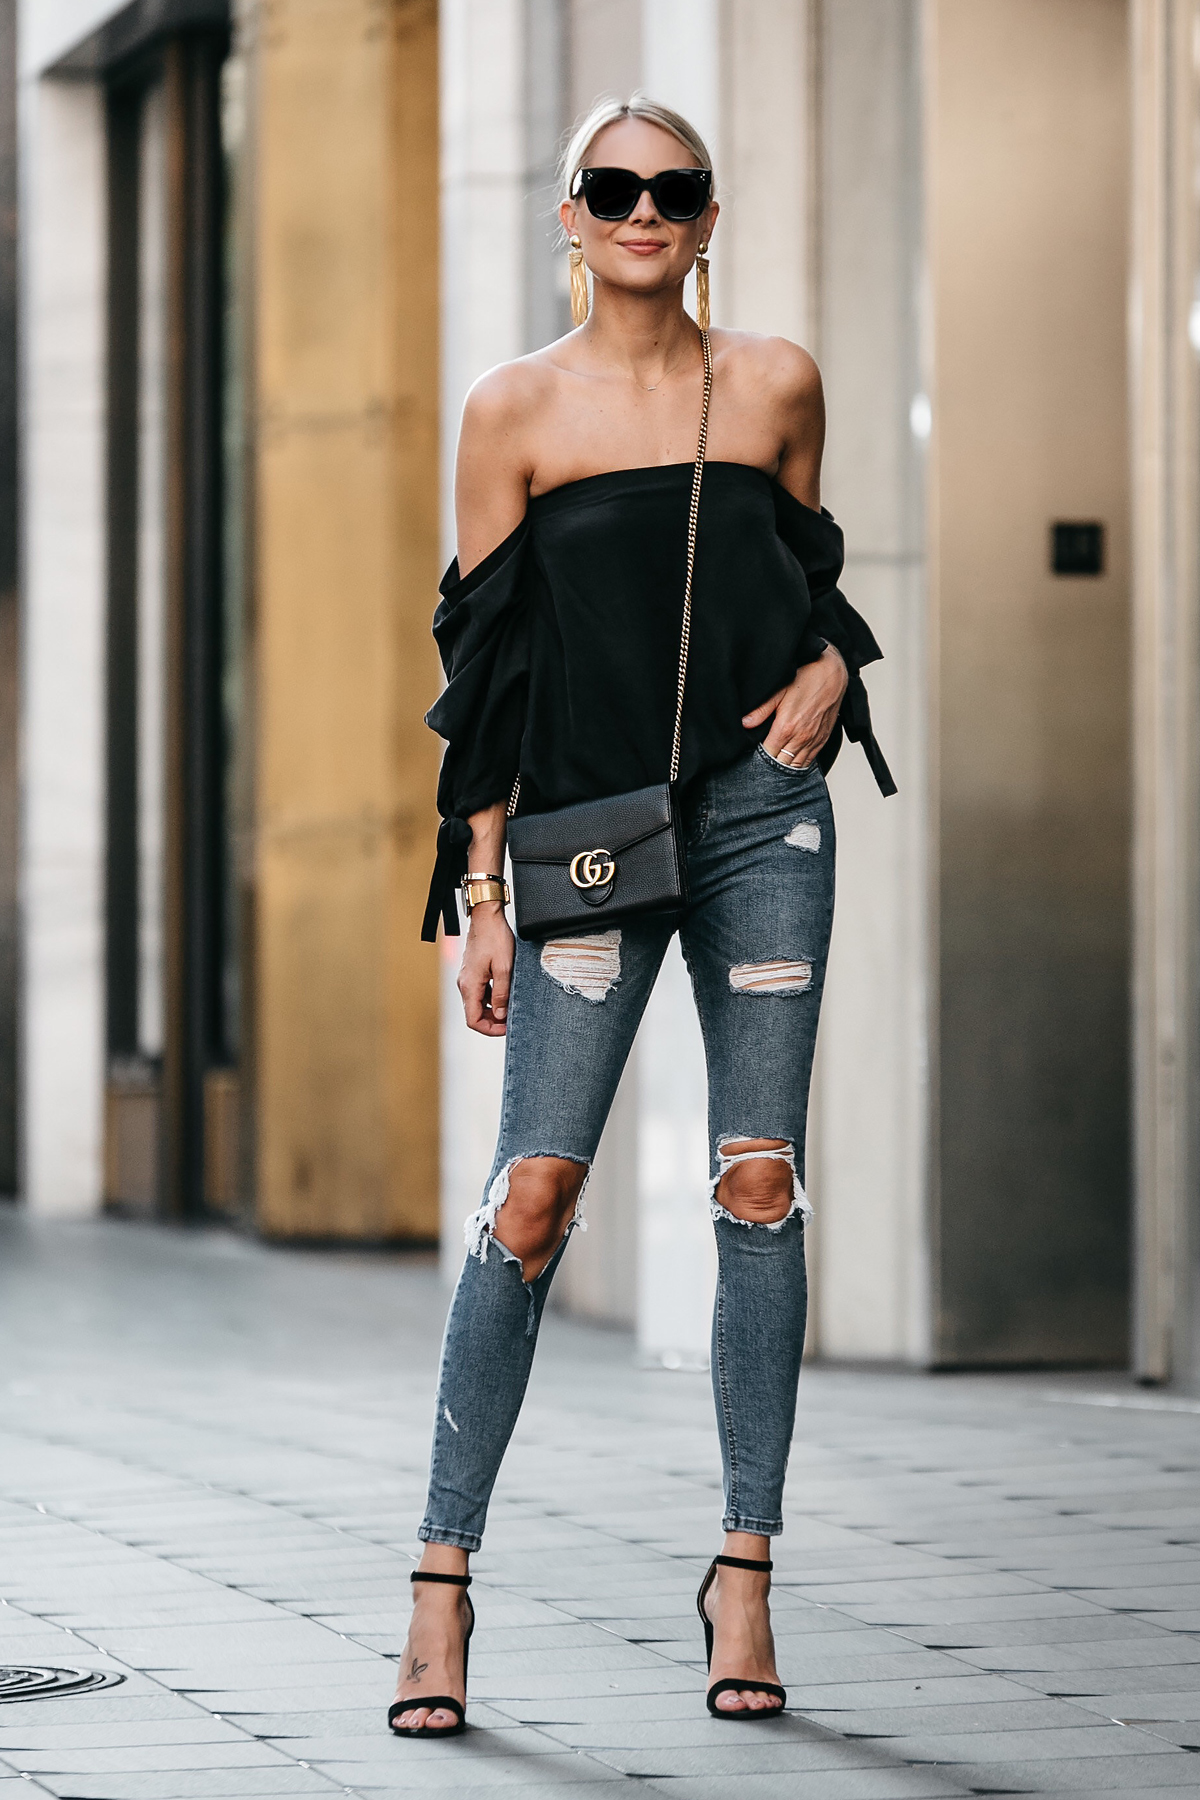 Blonde Woman Wearing Club Monaco Black Off-the-Shoulder Top Denim Ripped Skinny Jeans Outfit Gucci Marmont Handbag Black Ankle Strap Heeled Sandals